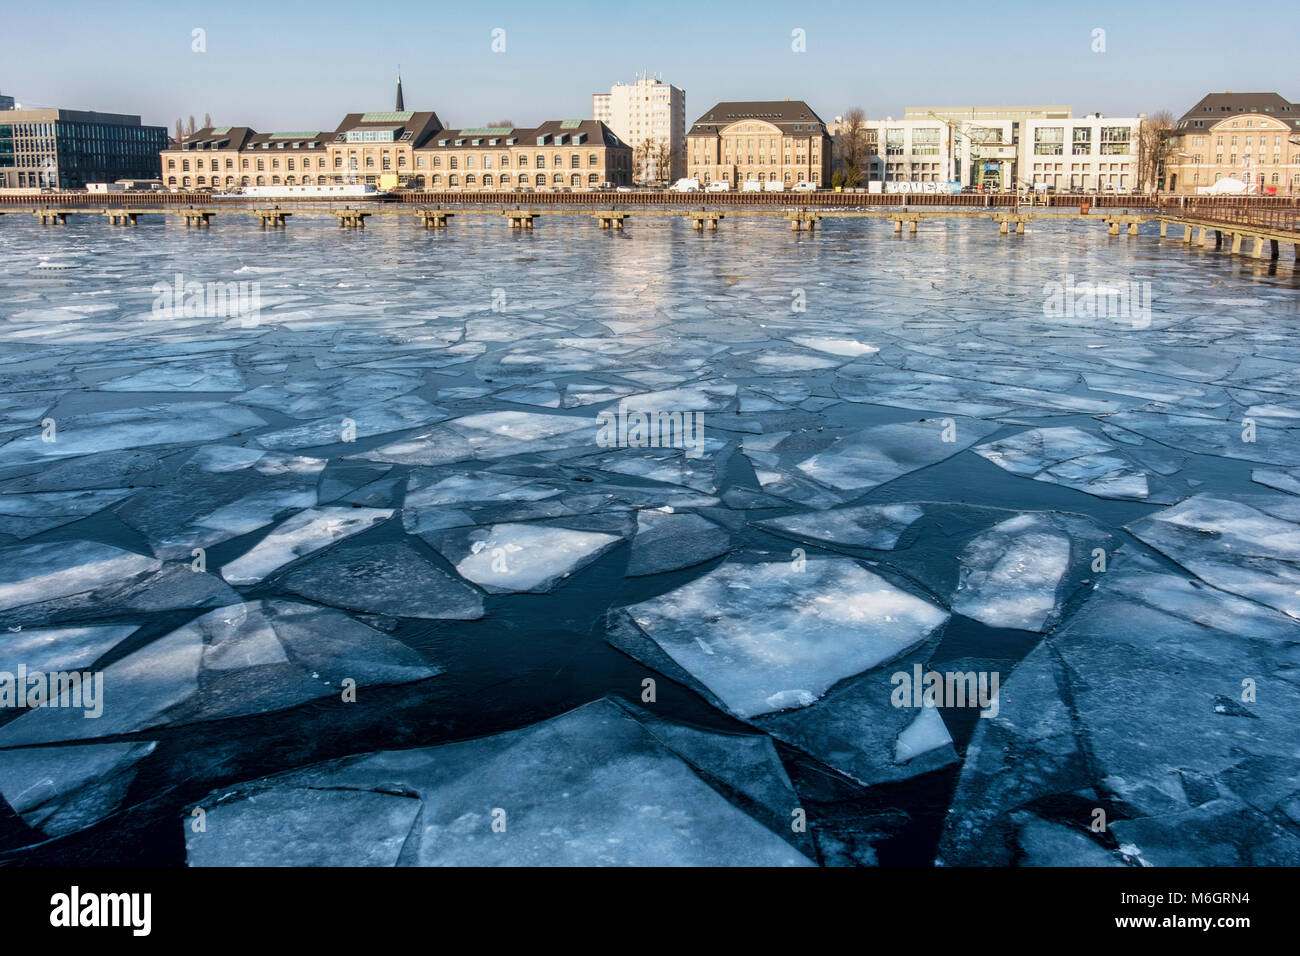 Germany ,Berlin, 3rd March 2018. The  river Spree freezes as sub zero temperatures cause ice floes to collect on the river. credit: Eden Breitz/Alamy Live News Stock Photo